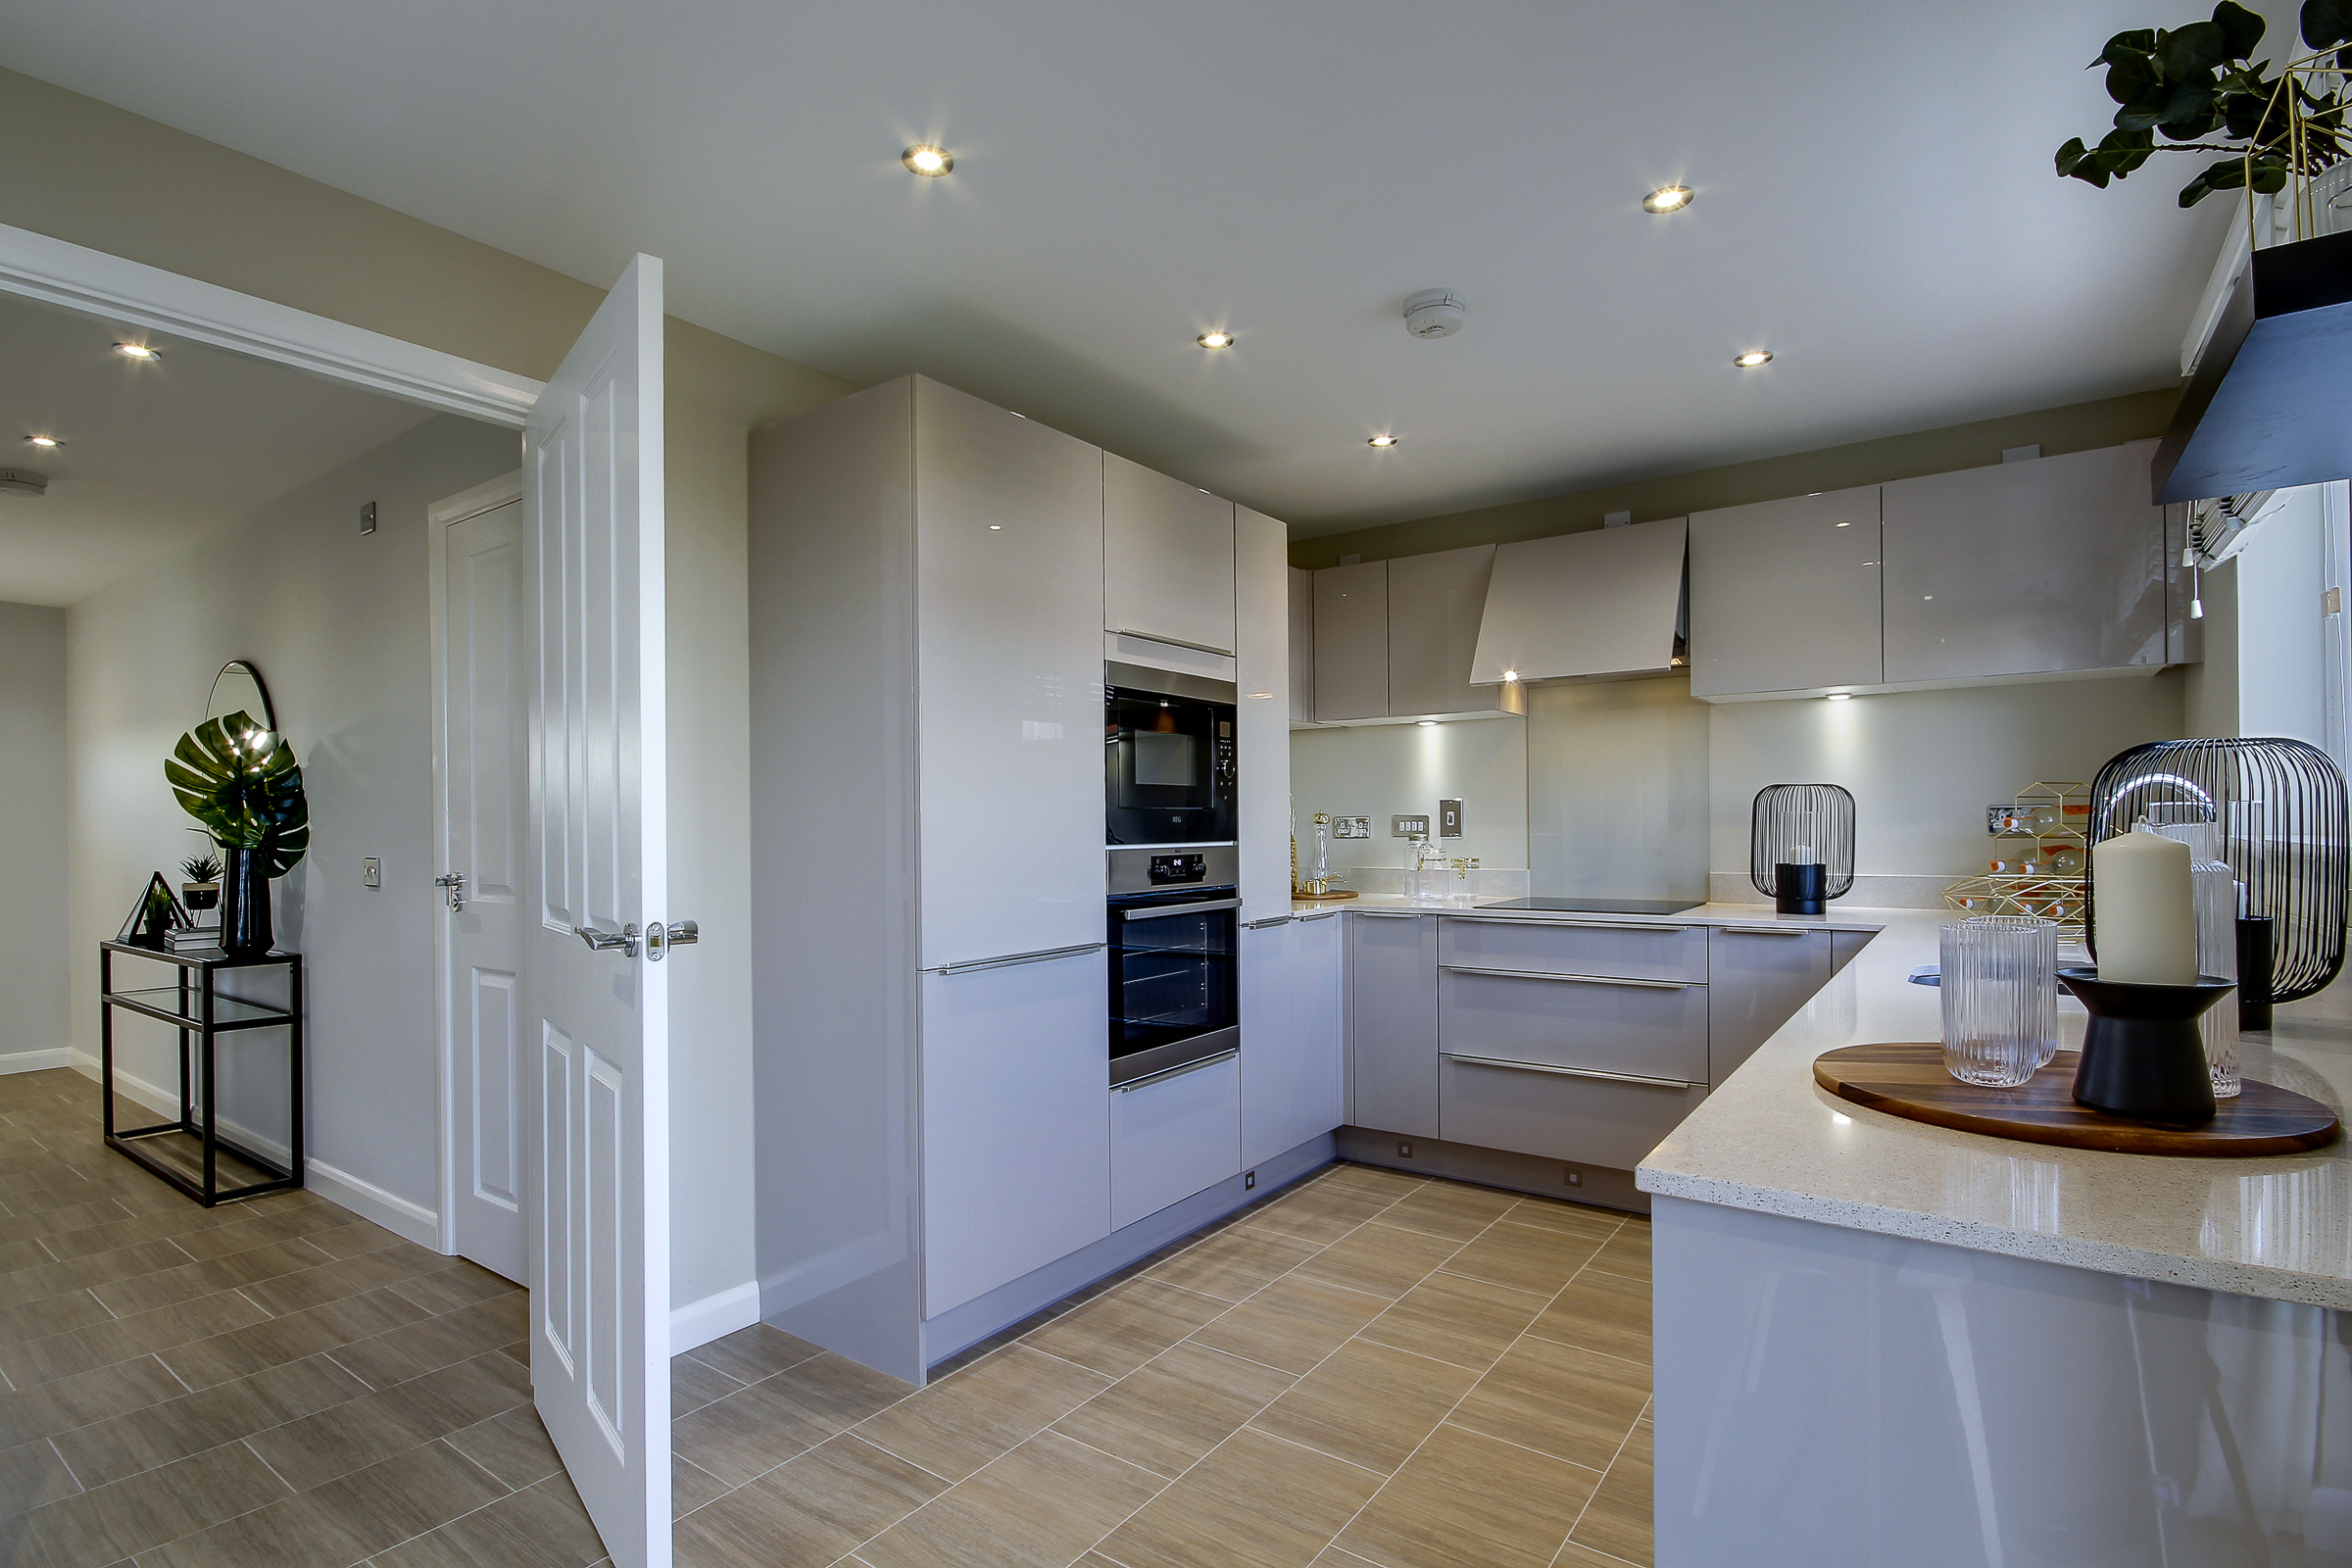 TWES_Calderwood_Geddes 5_Kitchen 2